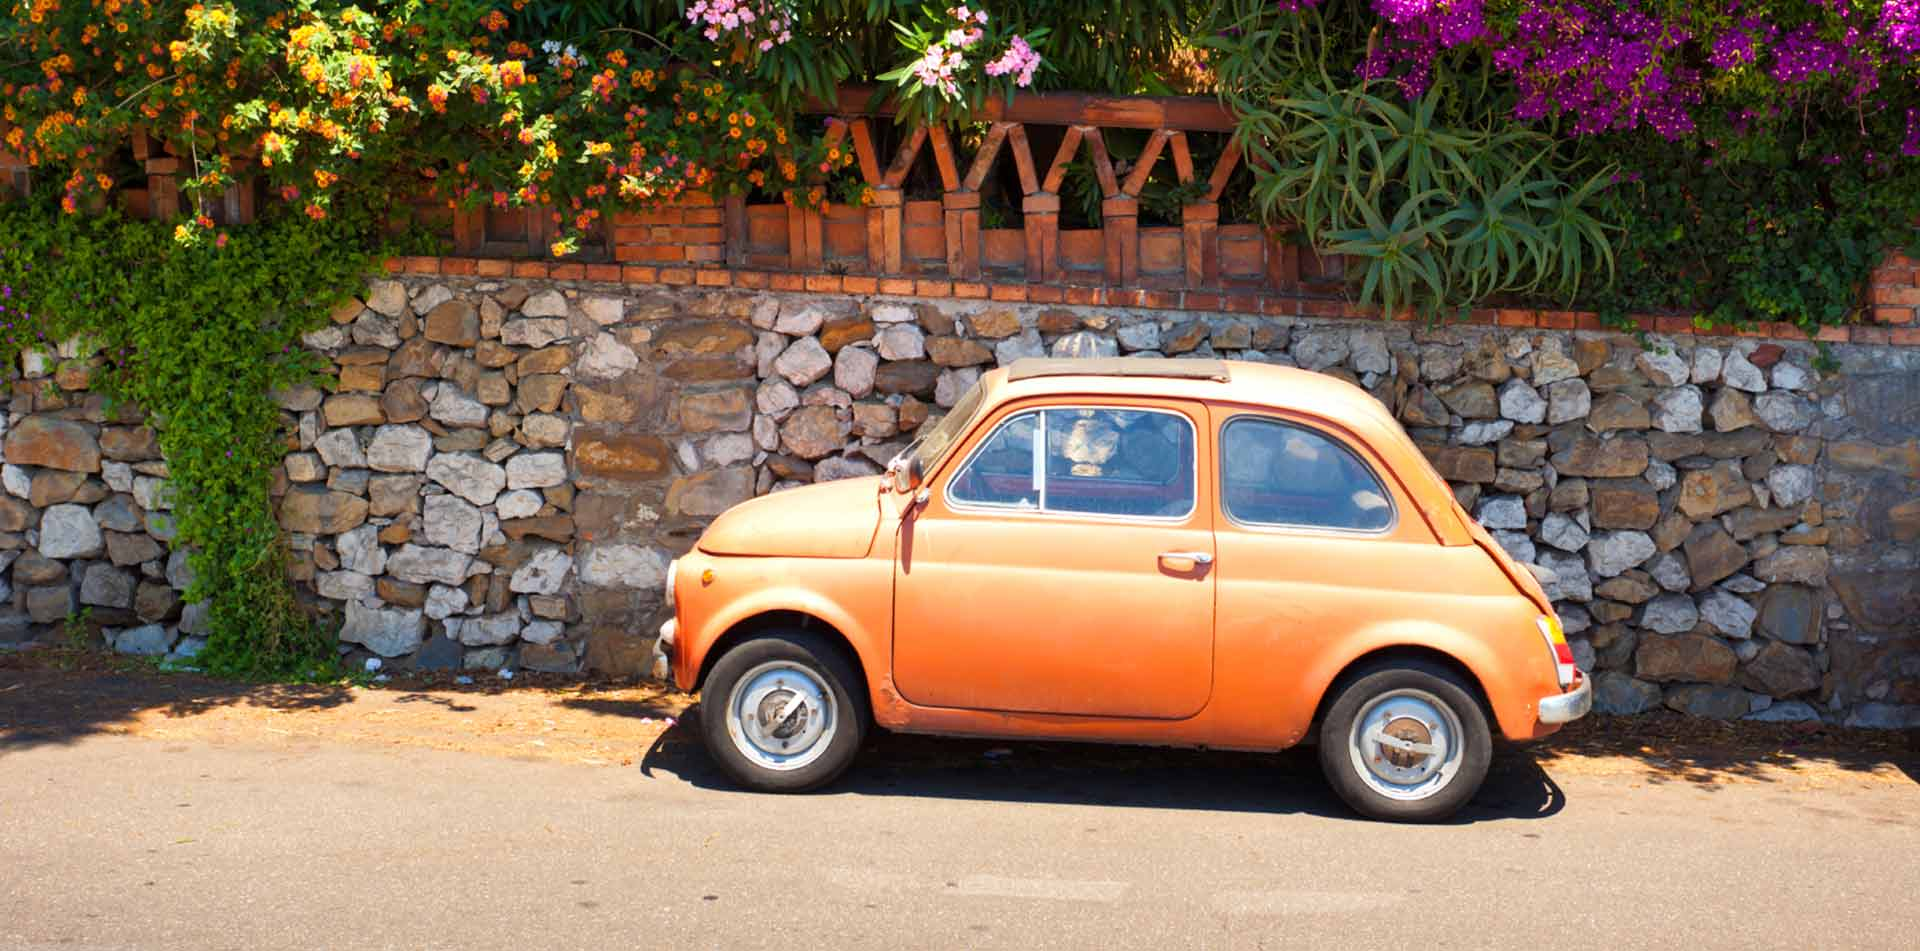 Europe Italy small orange Italian car on the side of a local plant-lined street - luxury vacation destinations